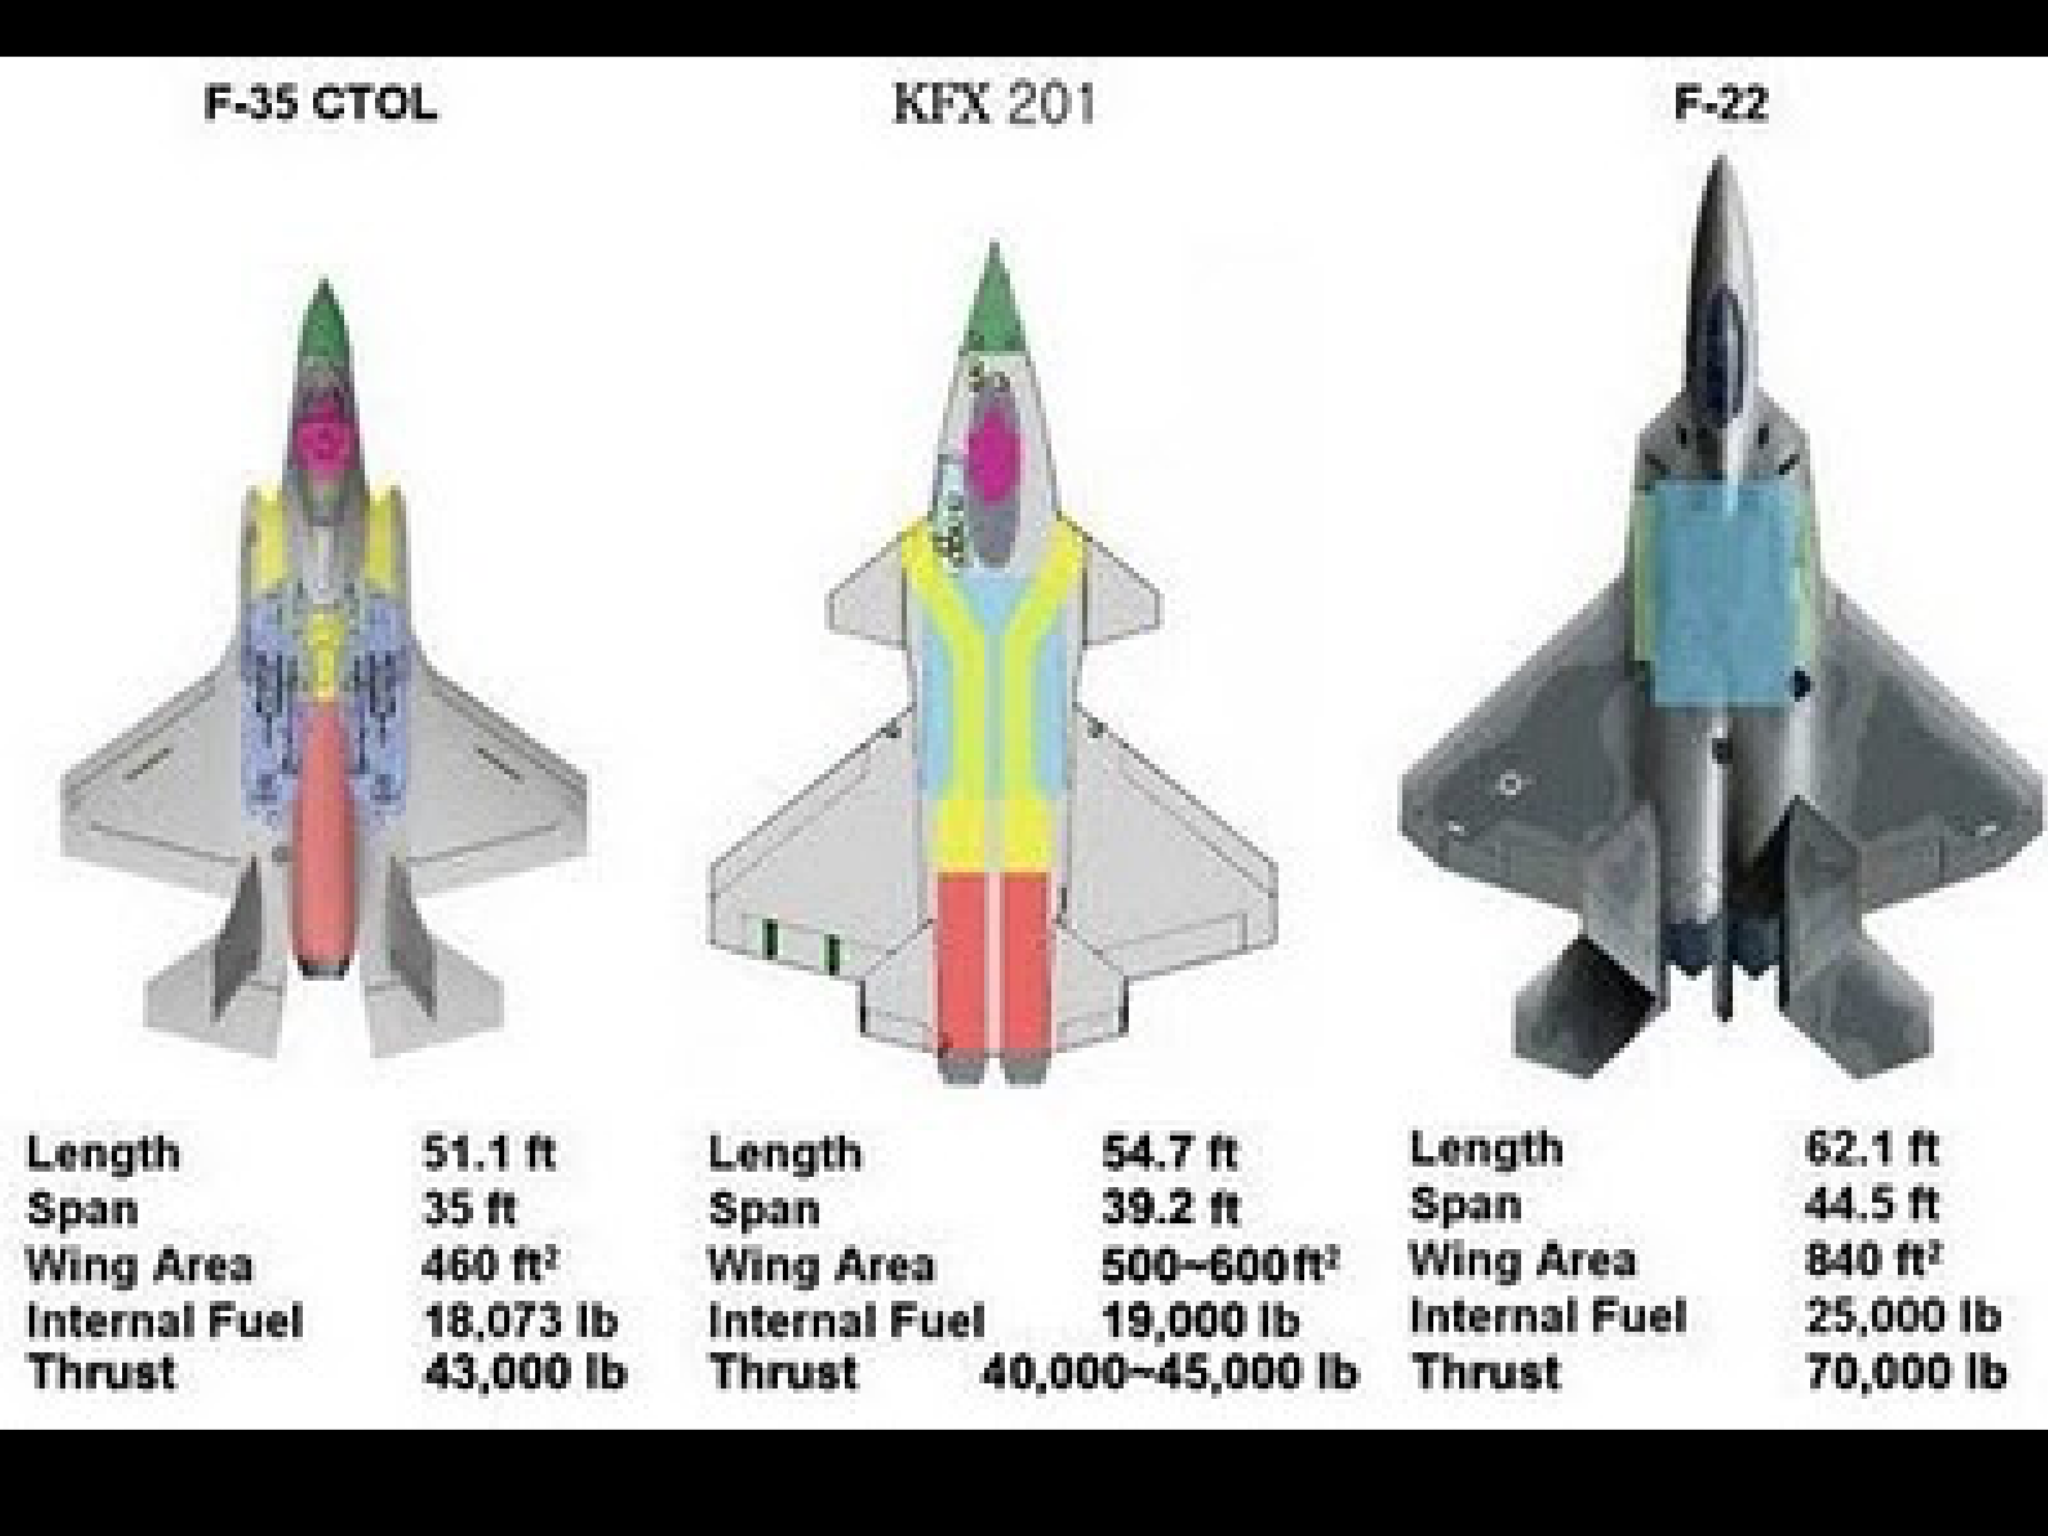 kfx vs f 35 vs f 22 fighter jets airplanes military aircraft [ 2048 x 1536 Pixel ]